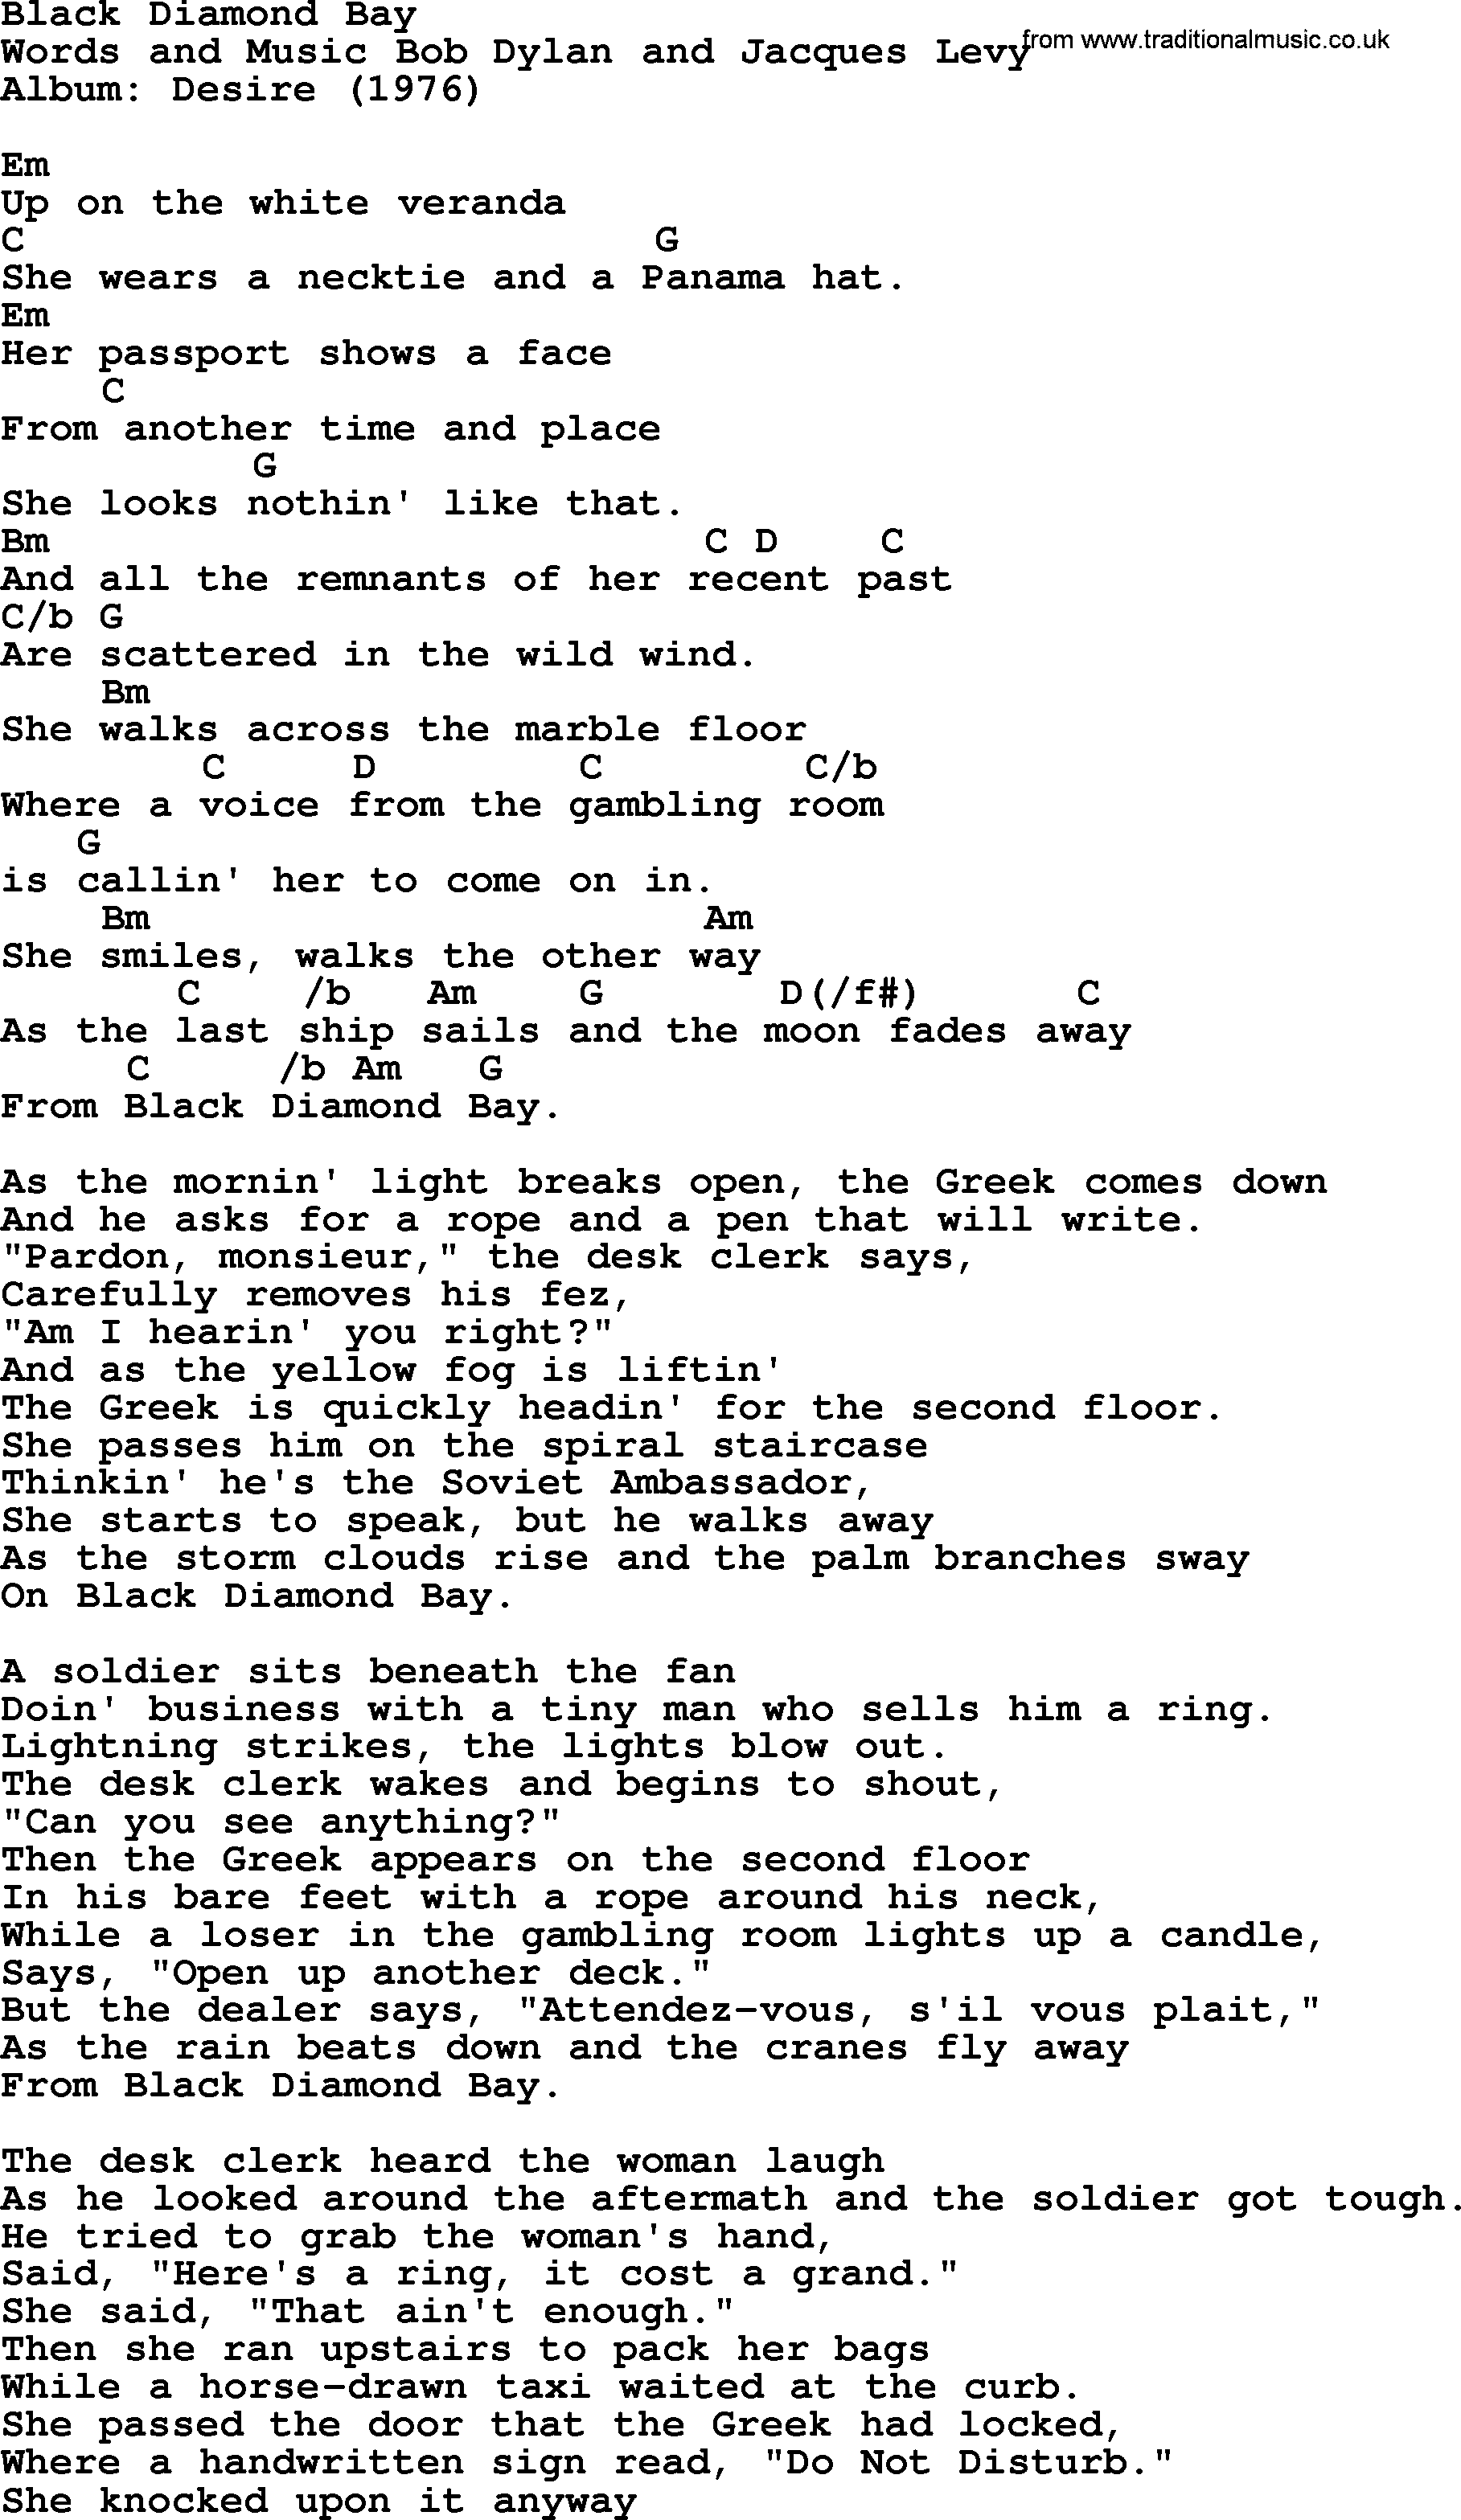 CLINT BLACK - BOB AWAY MY BLUES LYRICS